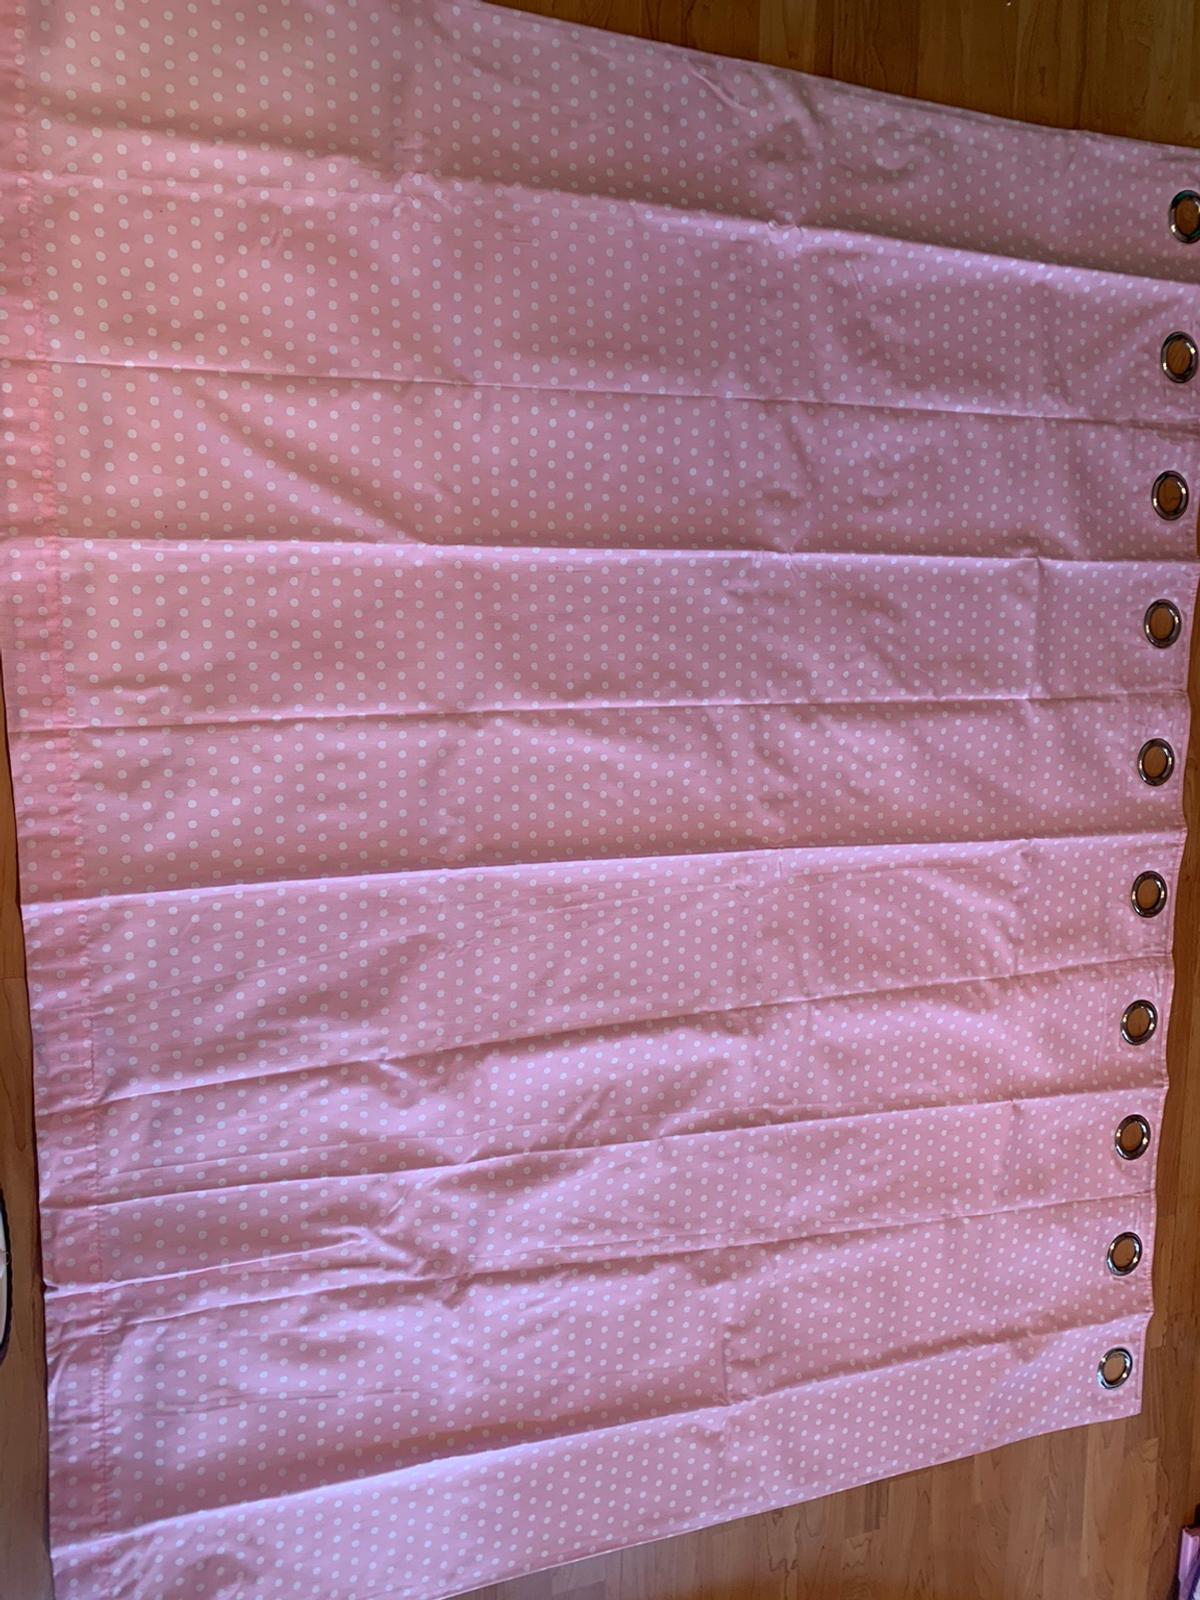 Polka Dot Blackout Curtains Pink And White In Wn4 Wigan For 5 00 For Sale Shpock